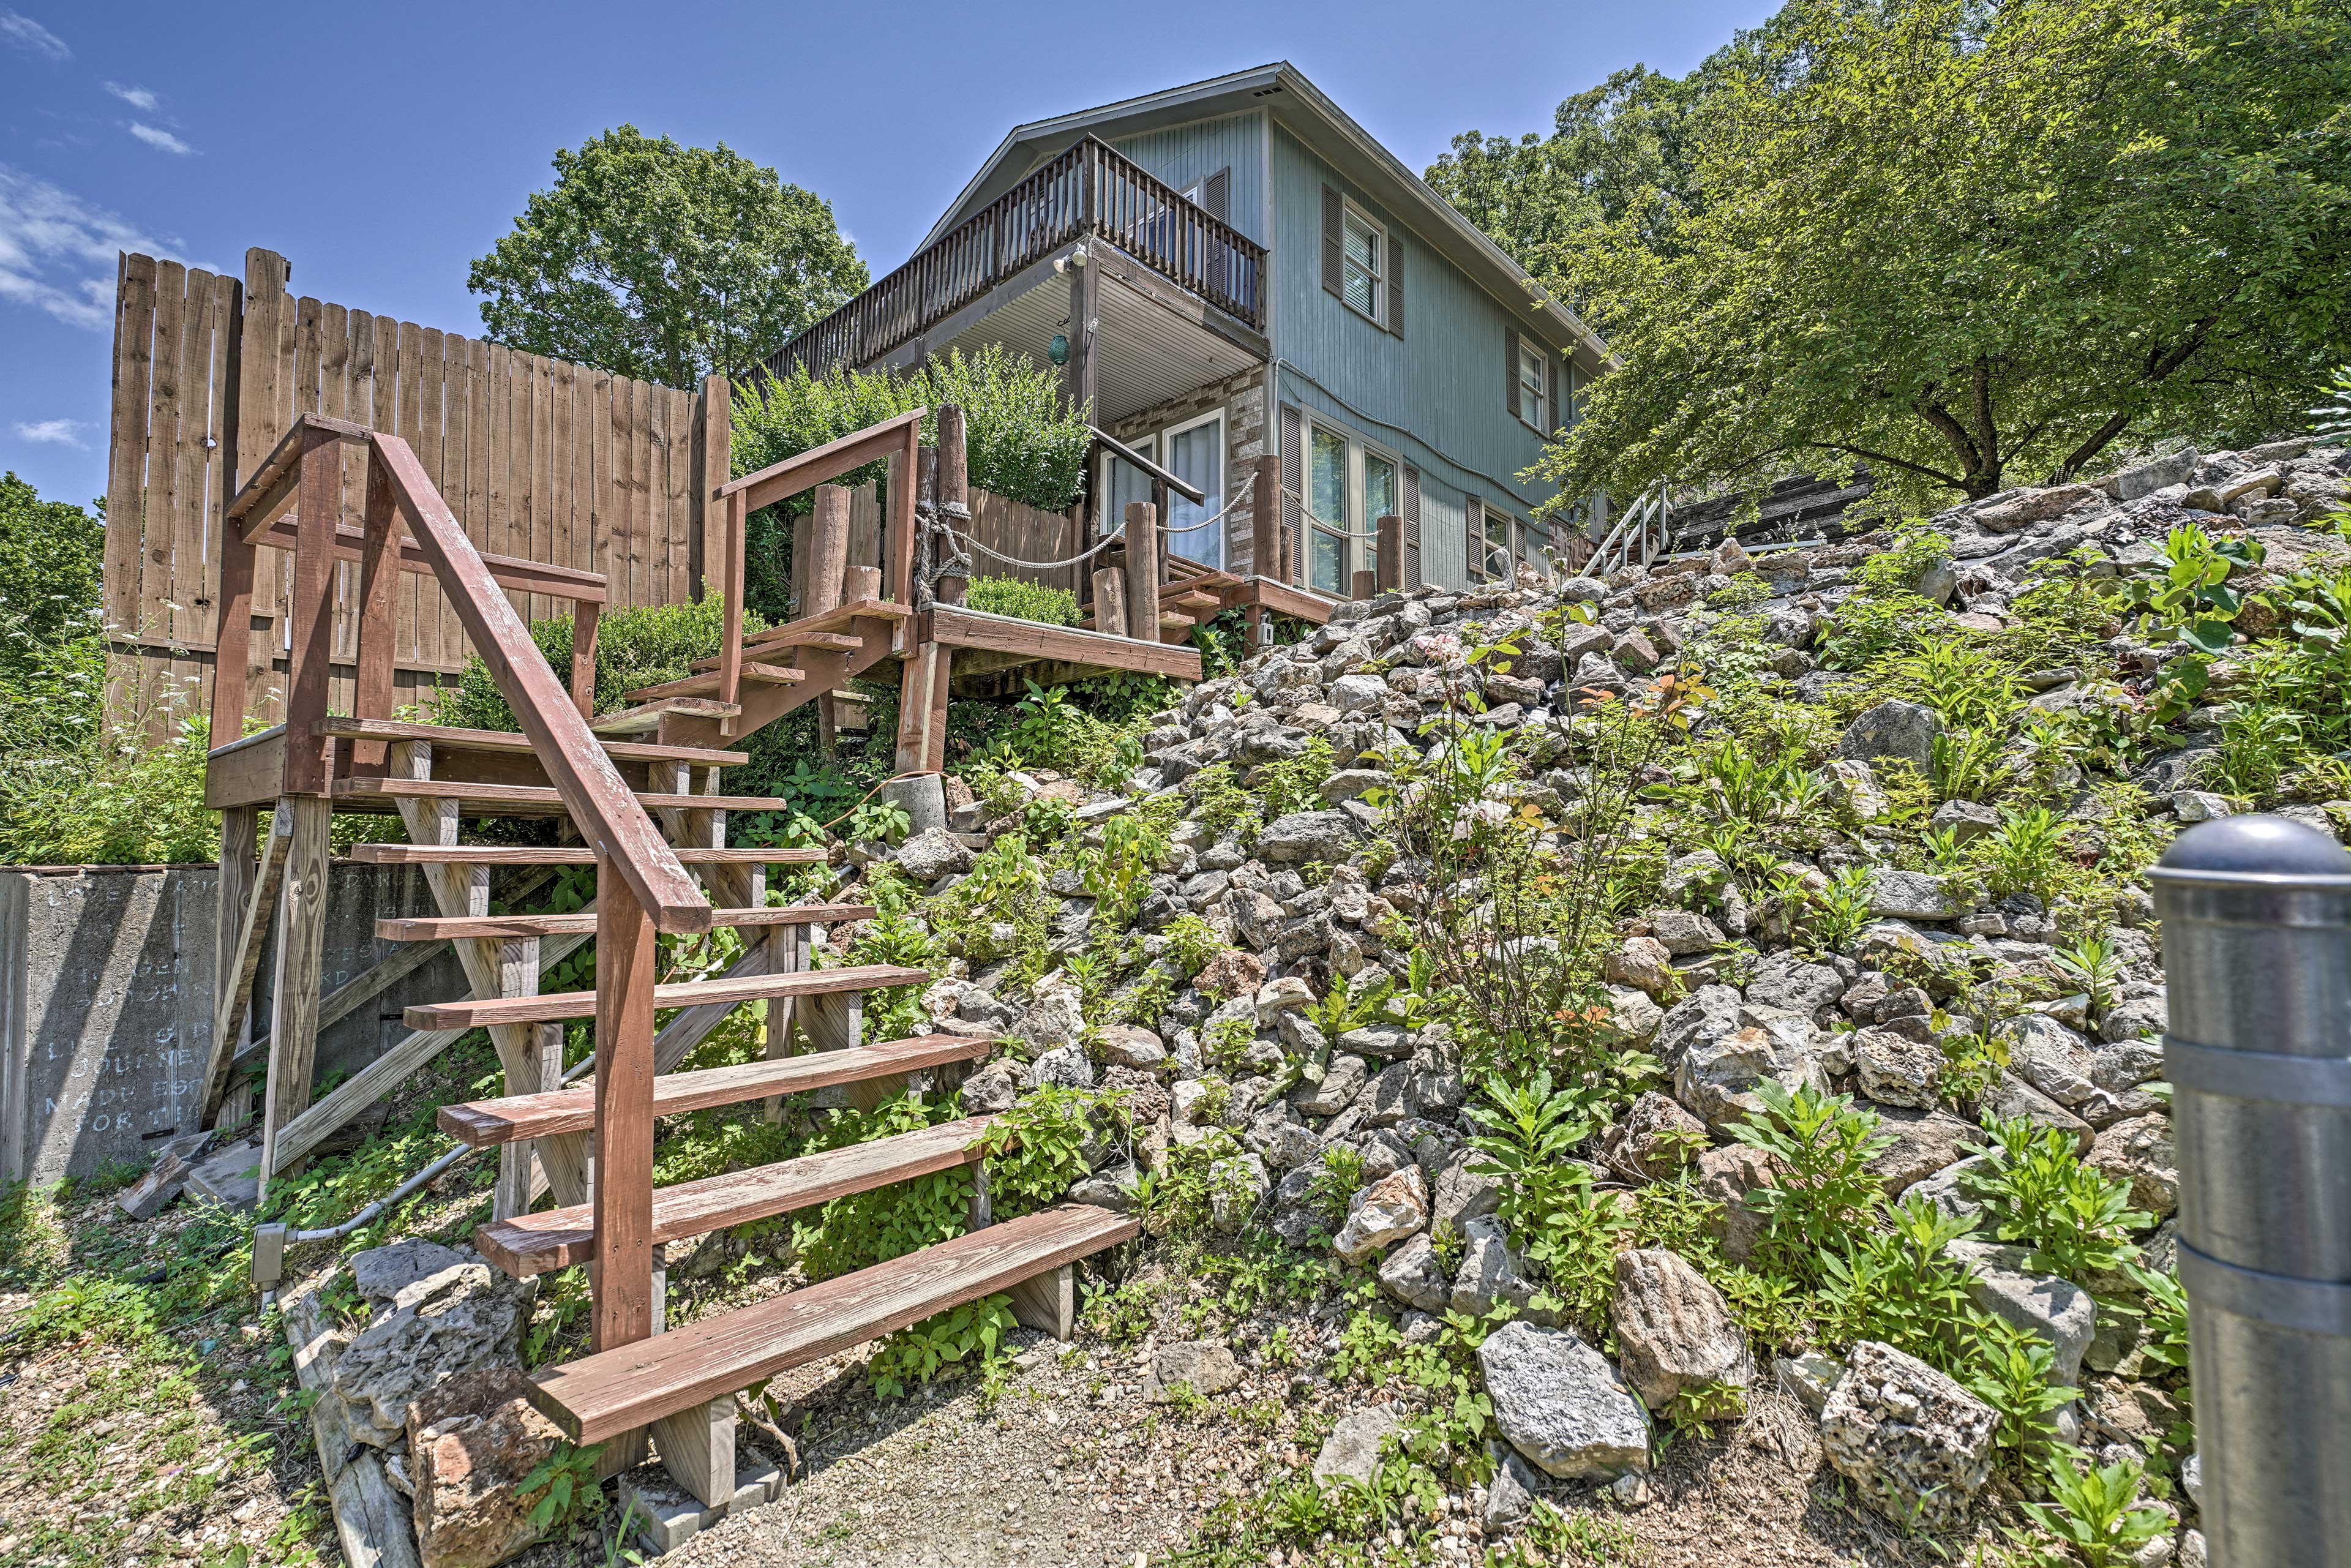 Simply walk down a flight of stairs to reach the dock & swimming platform!